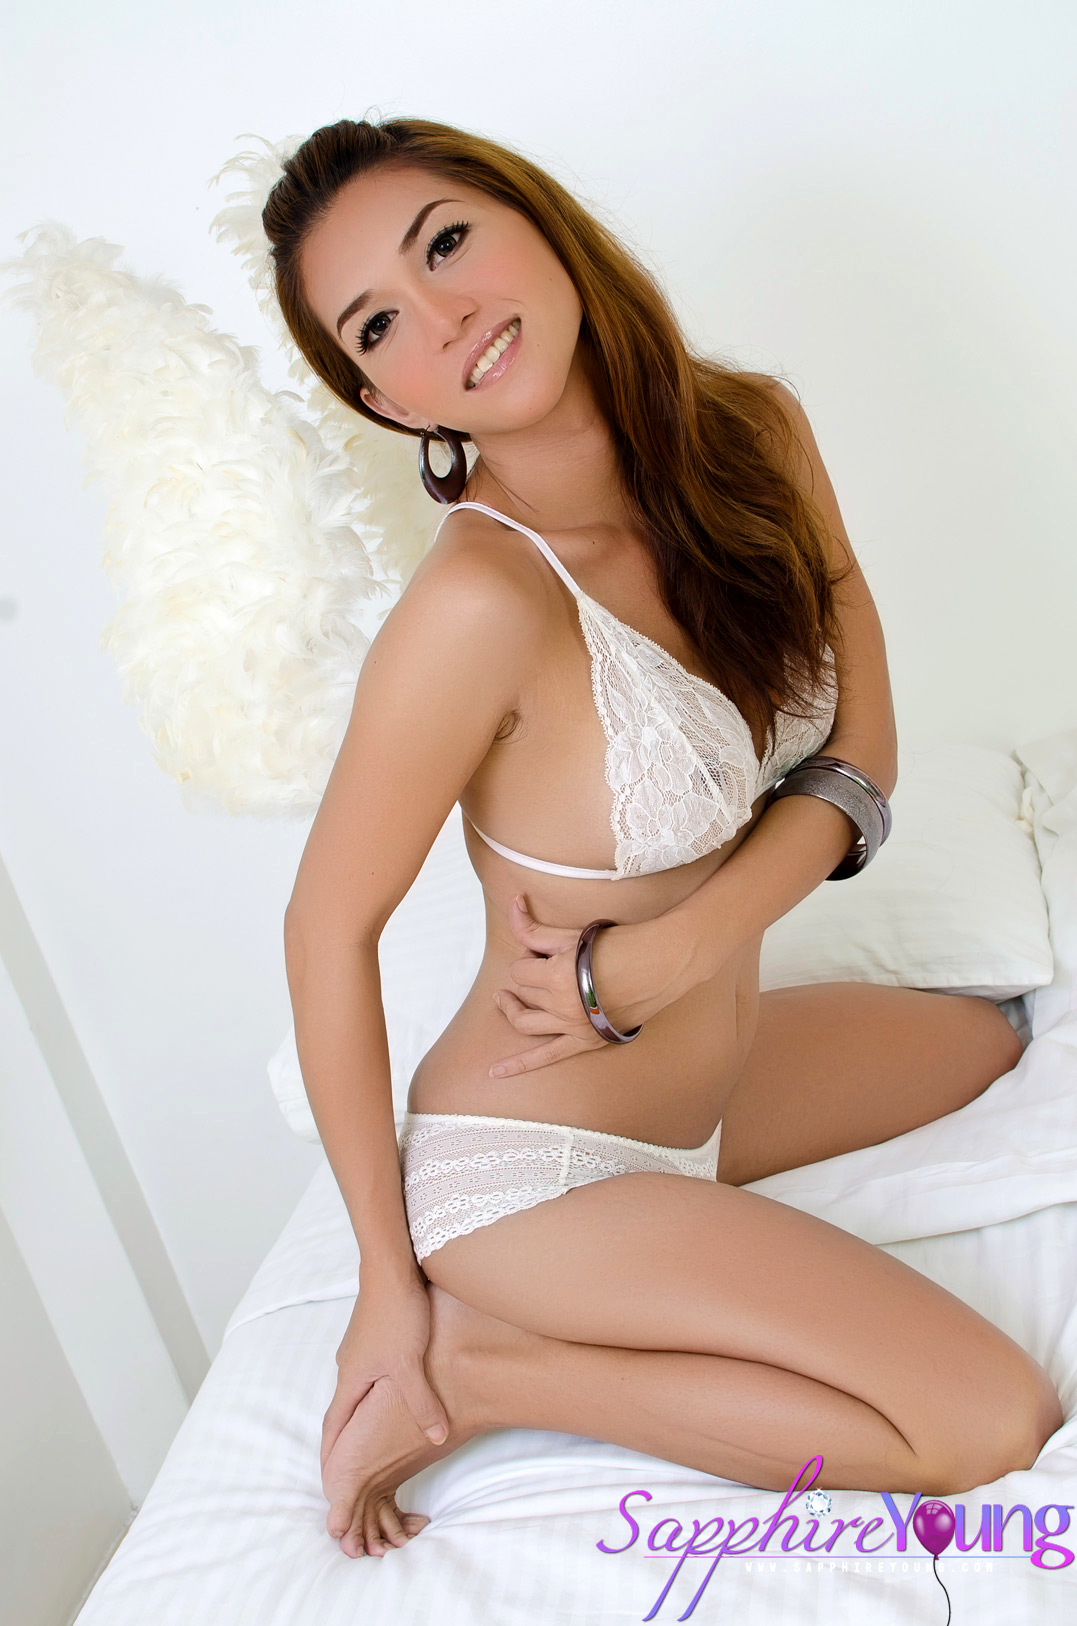 Thai Femboy Sapphire Young Is A Hungry Angel That Gives Us A Great Cumshot